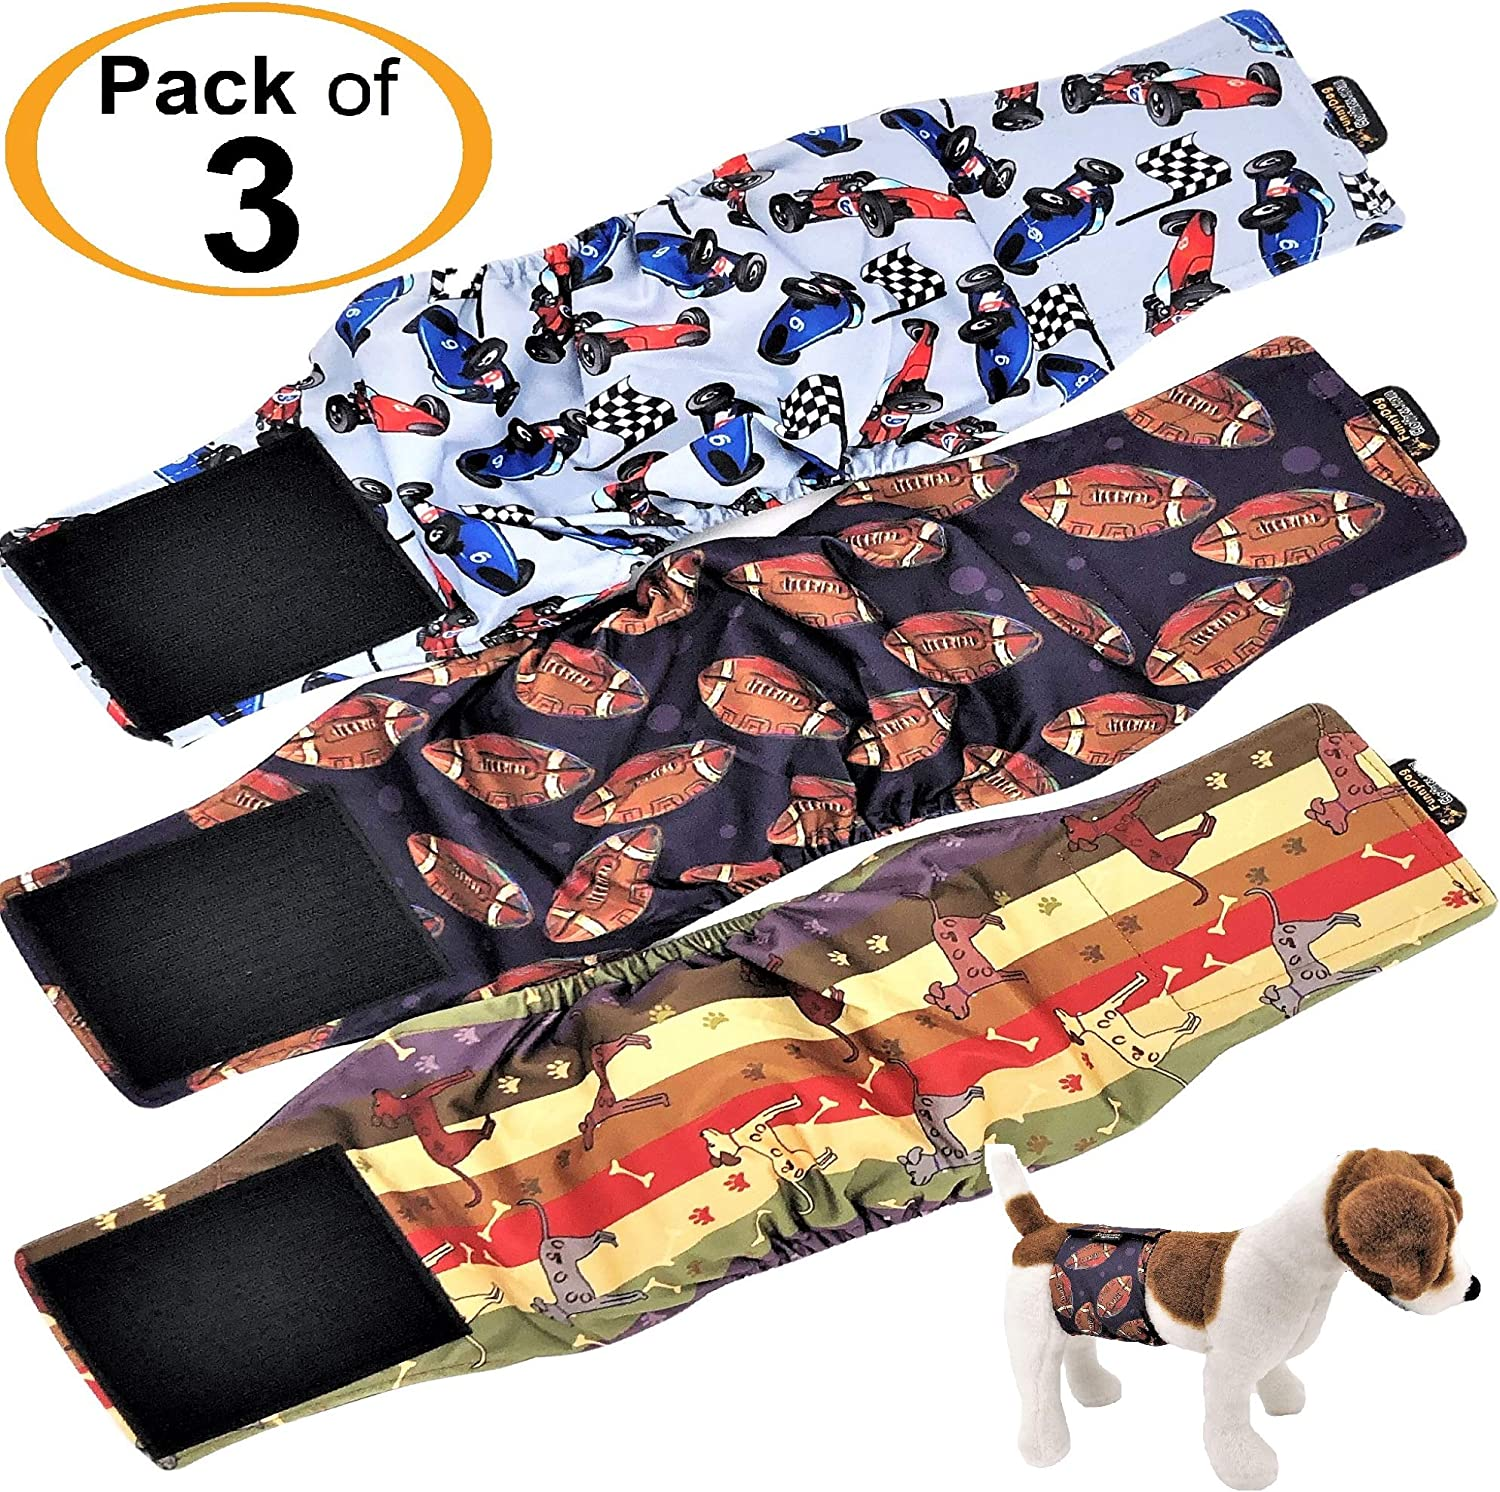 FunnyDogClothes Pack of 3 or 6 Male Dog Diapers 4 Layers of Absorbent Pads Waterproof Leak Proof Belly Band Wrap Washable